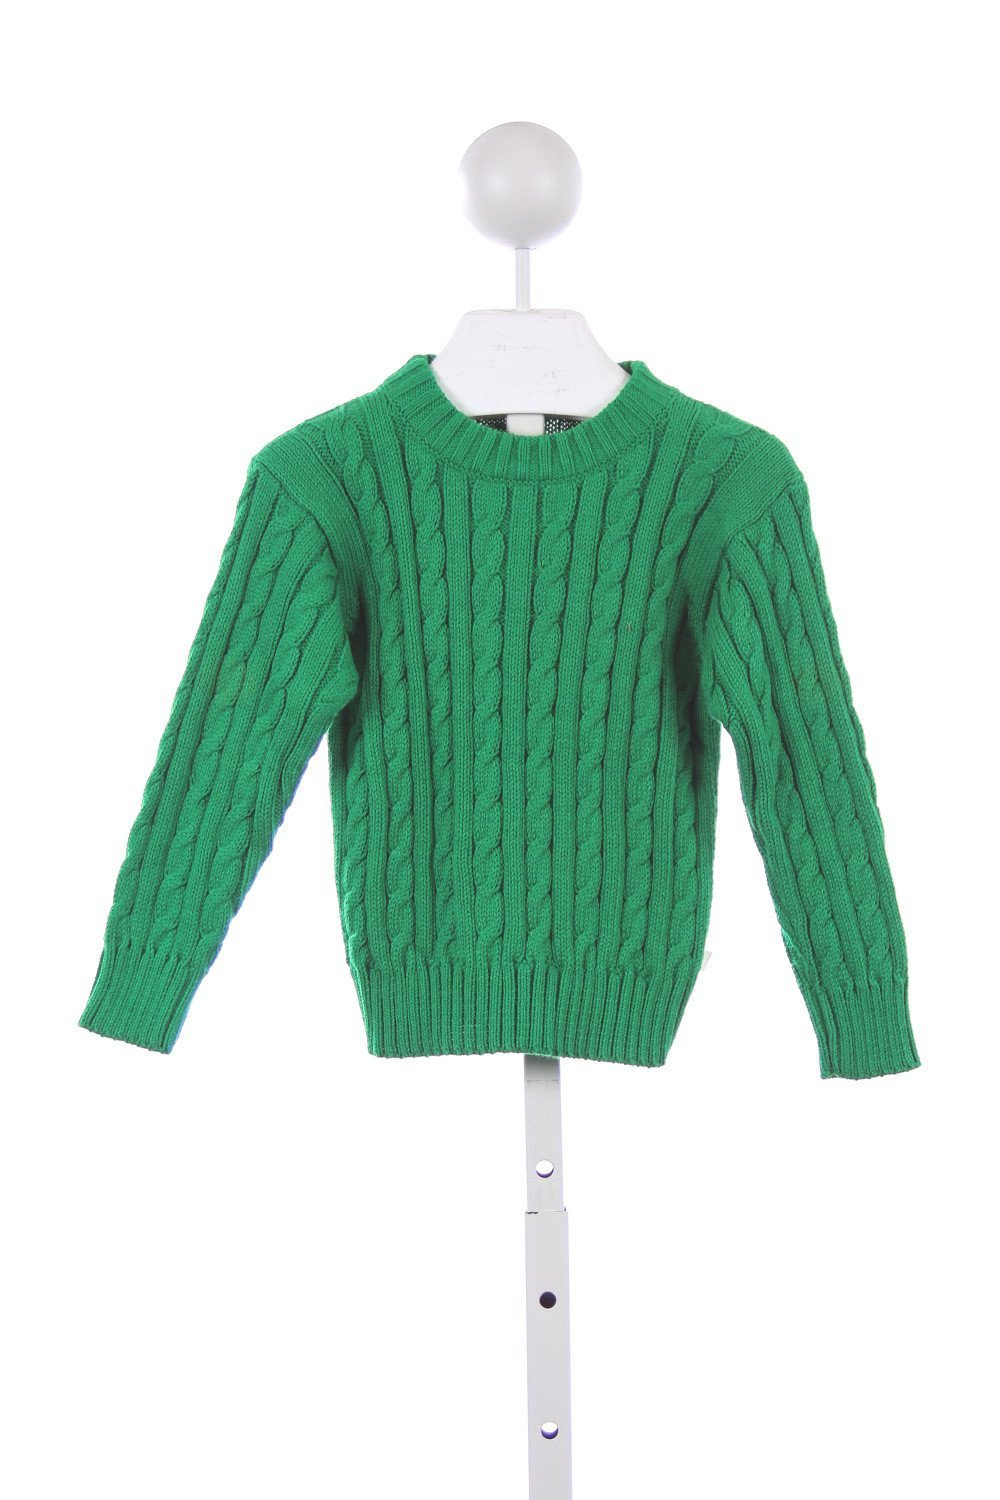 BLISS KELLY GREEN CABLE KNIT SWEATER